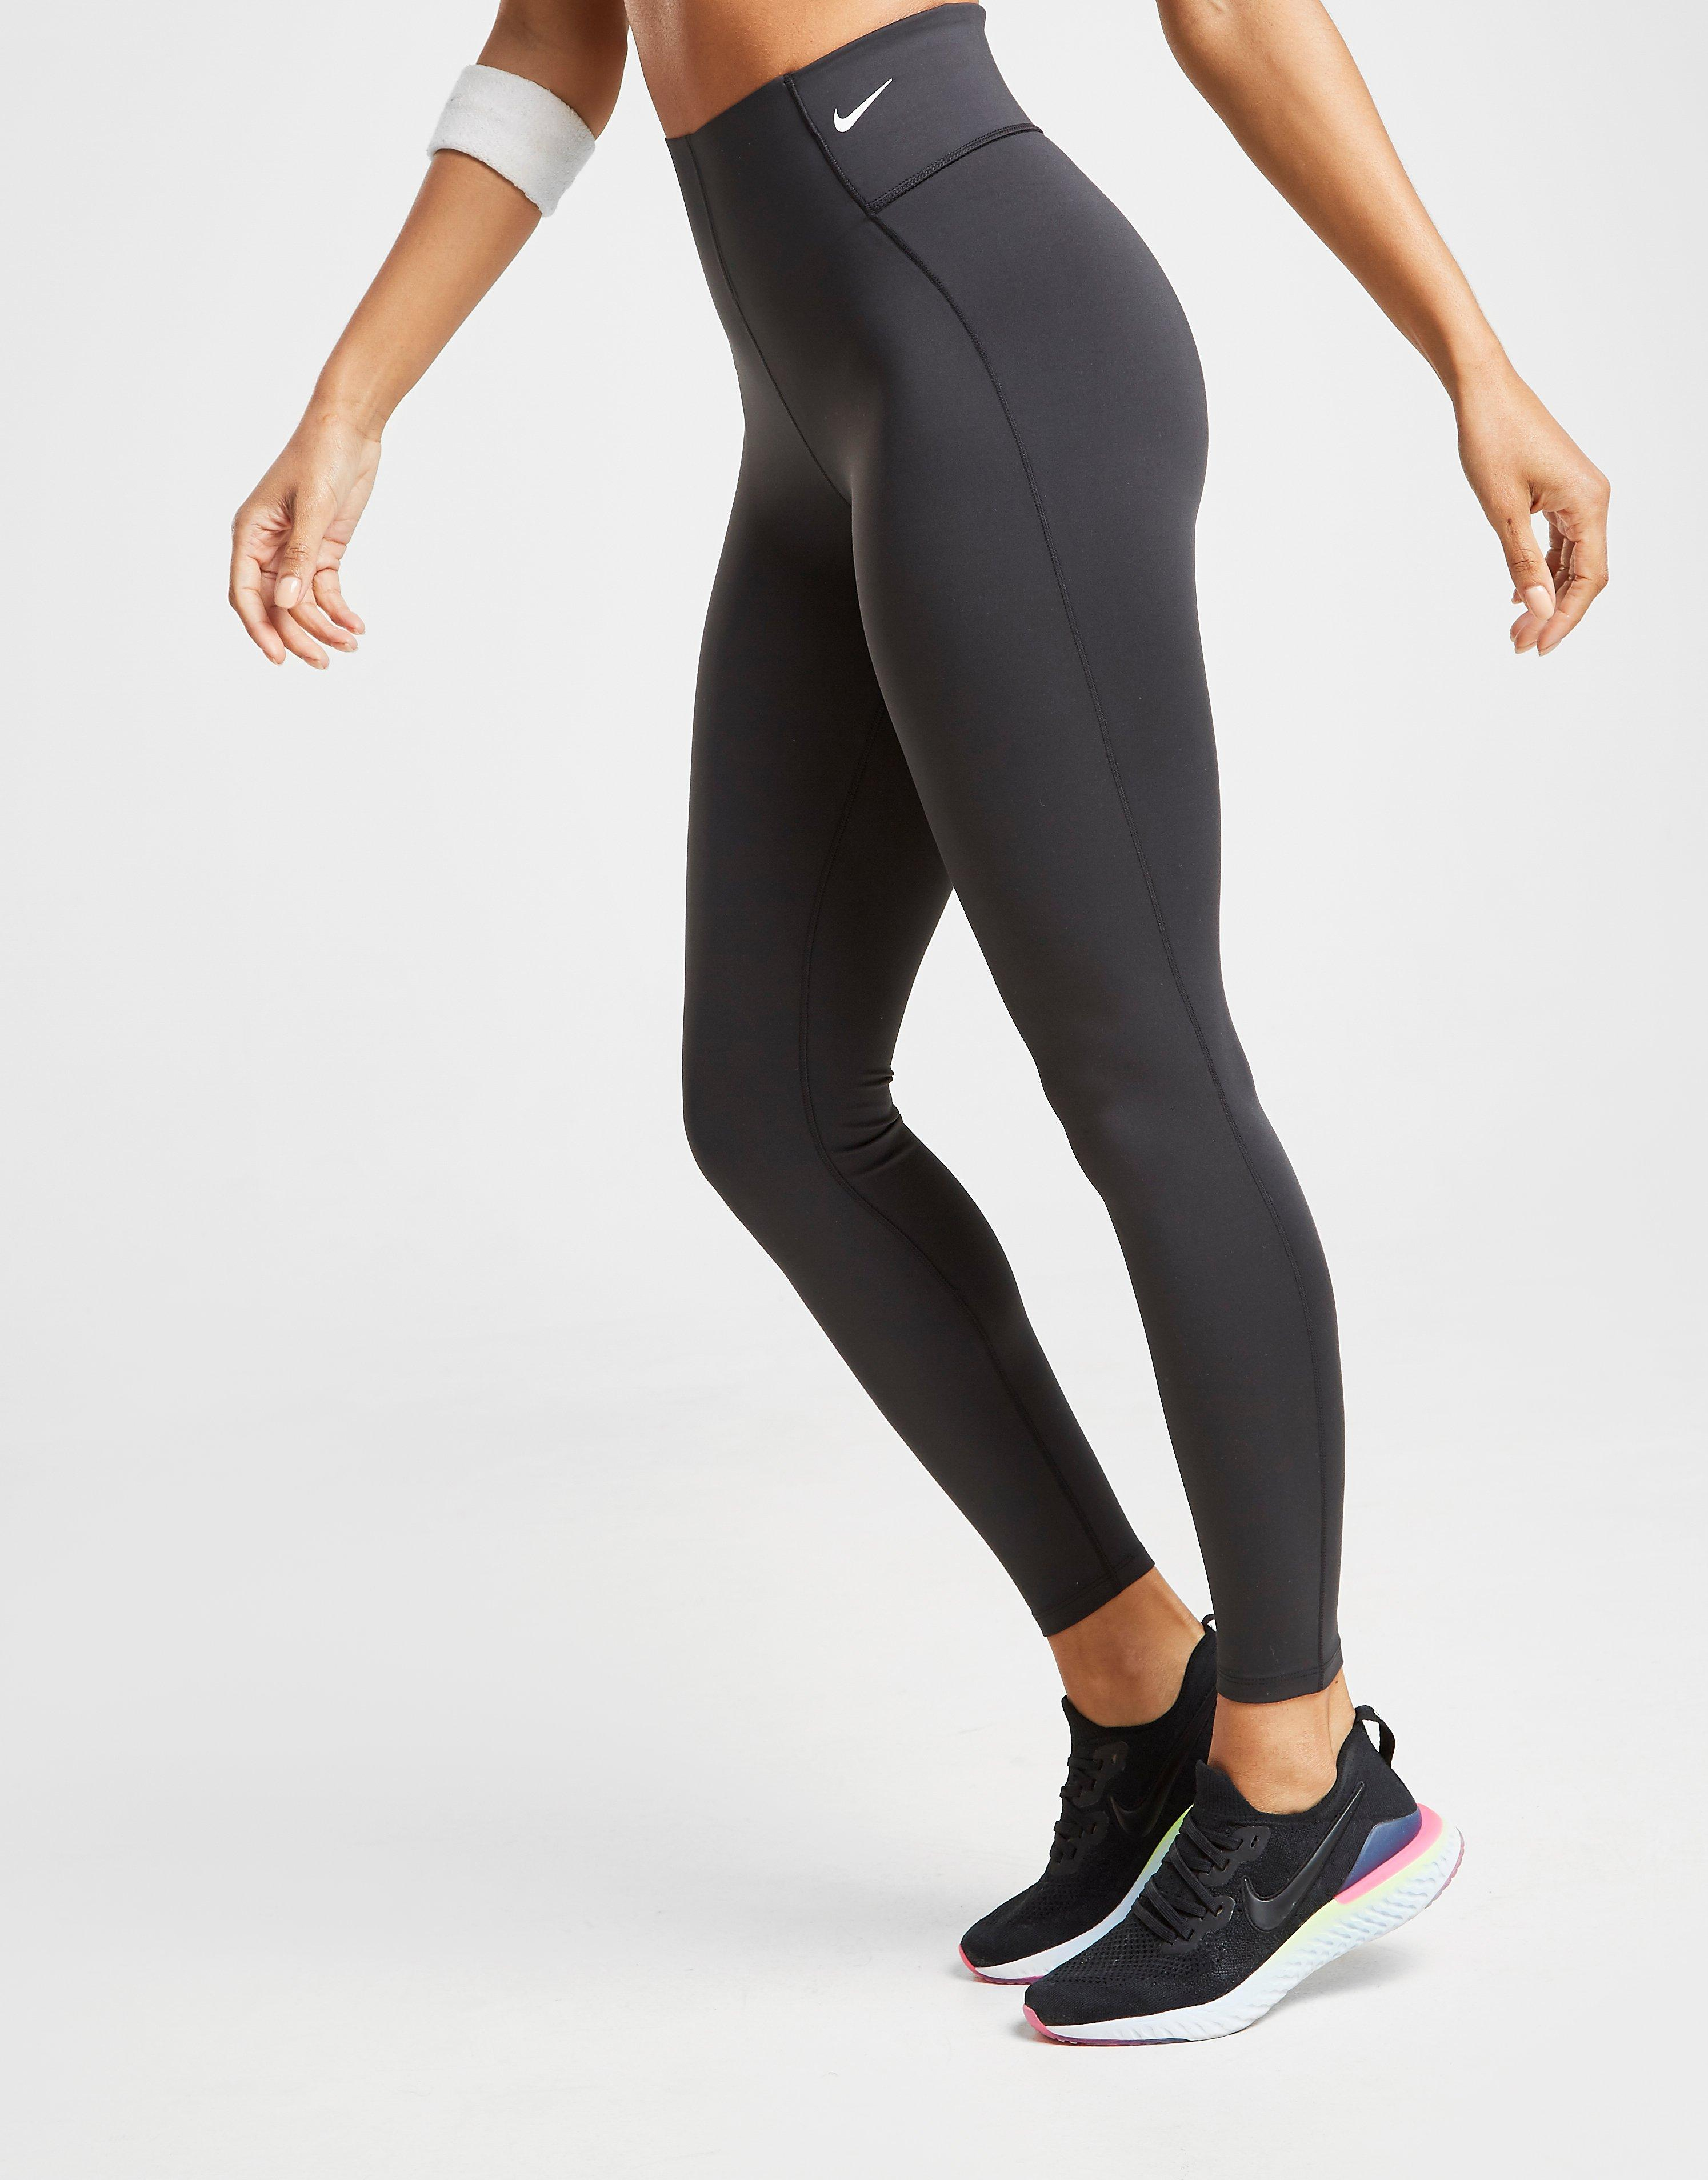 nike tights and leggings